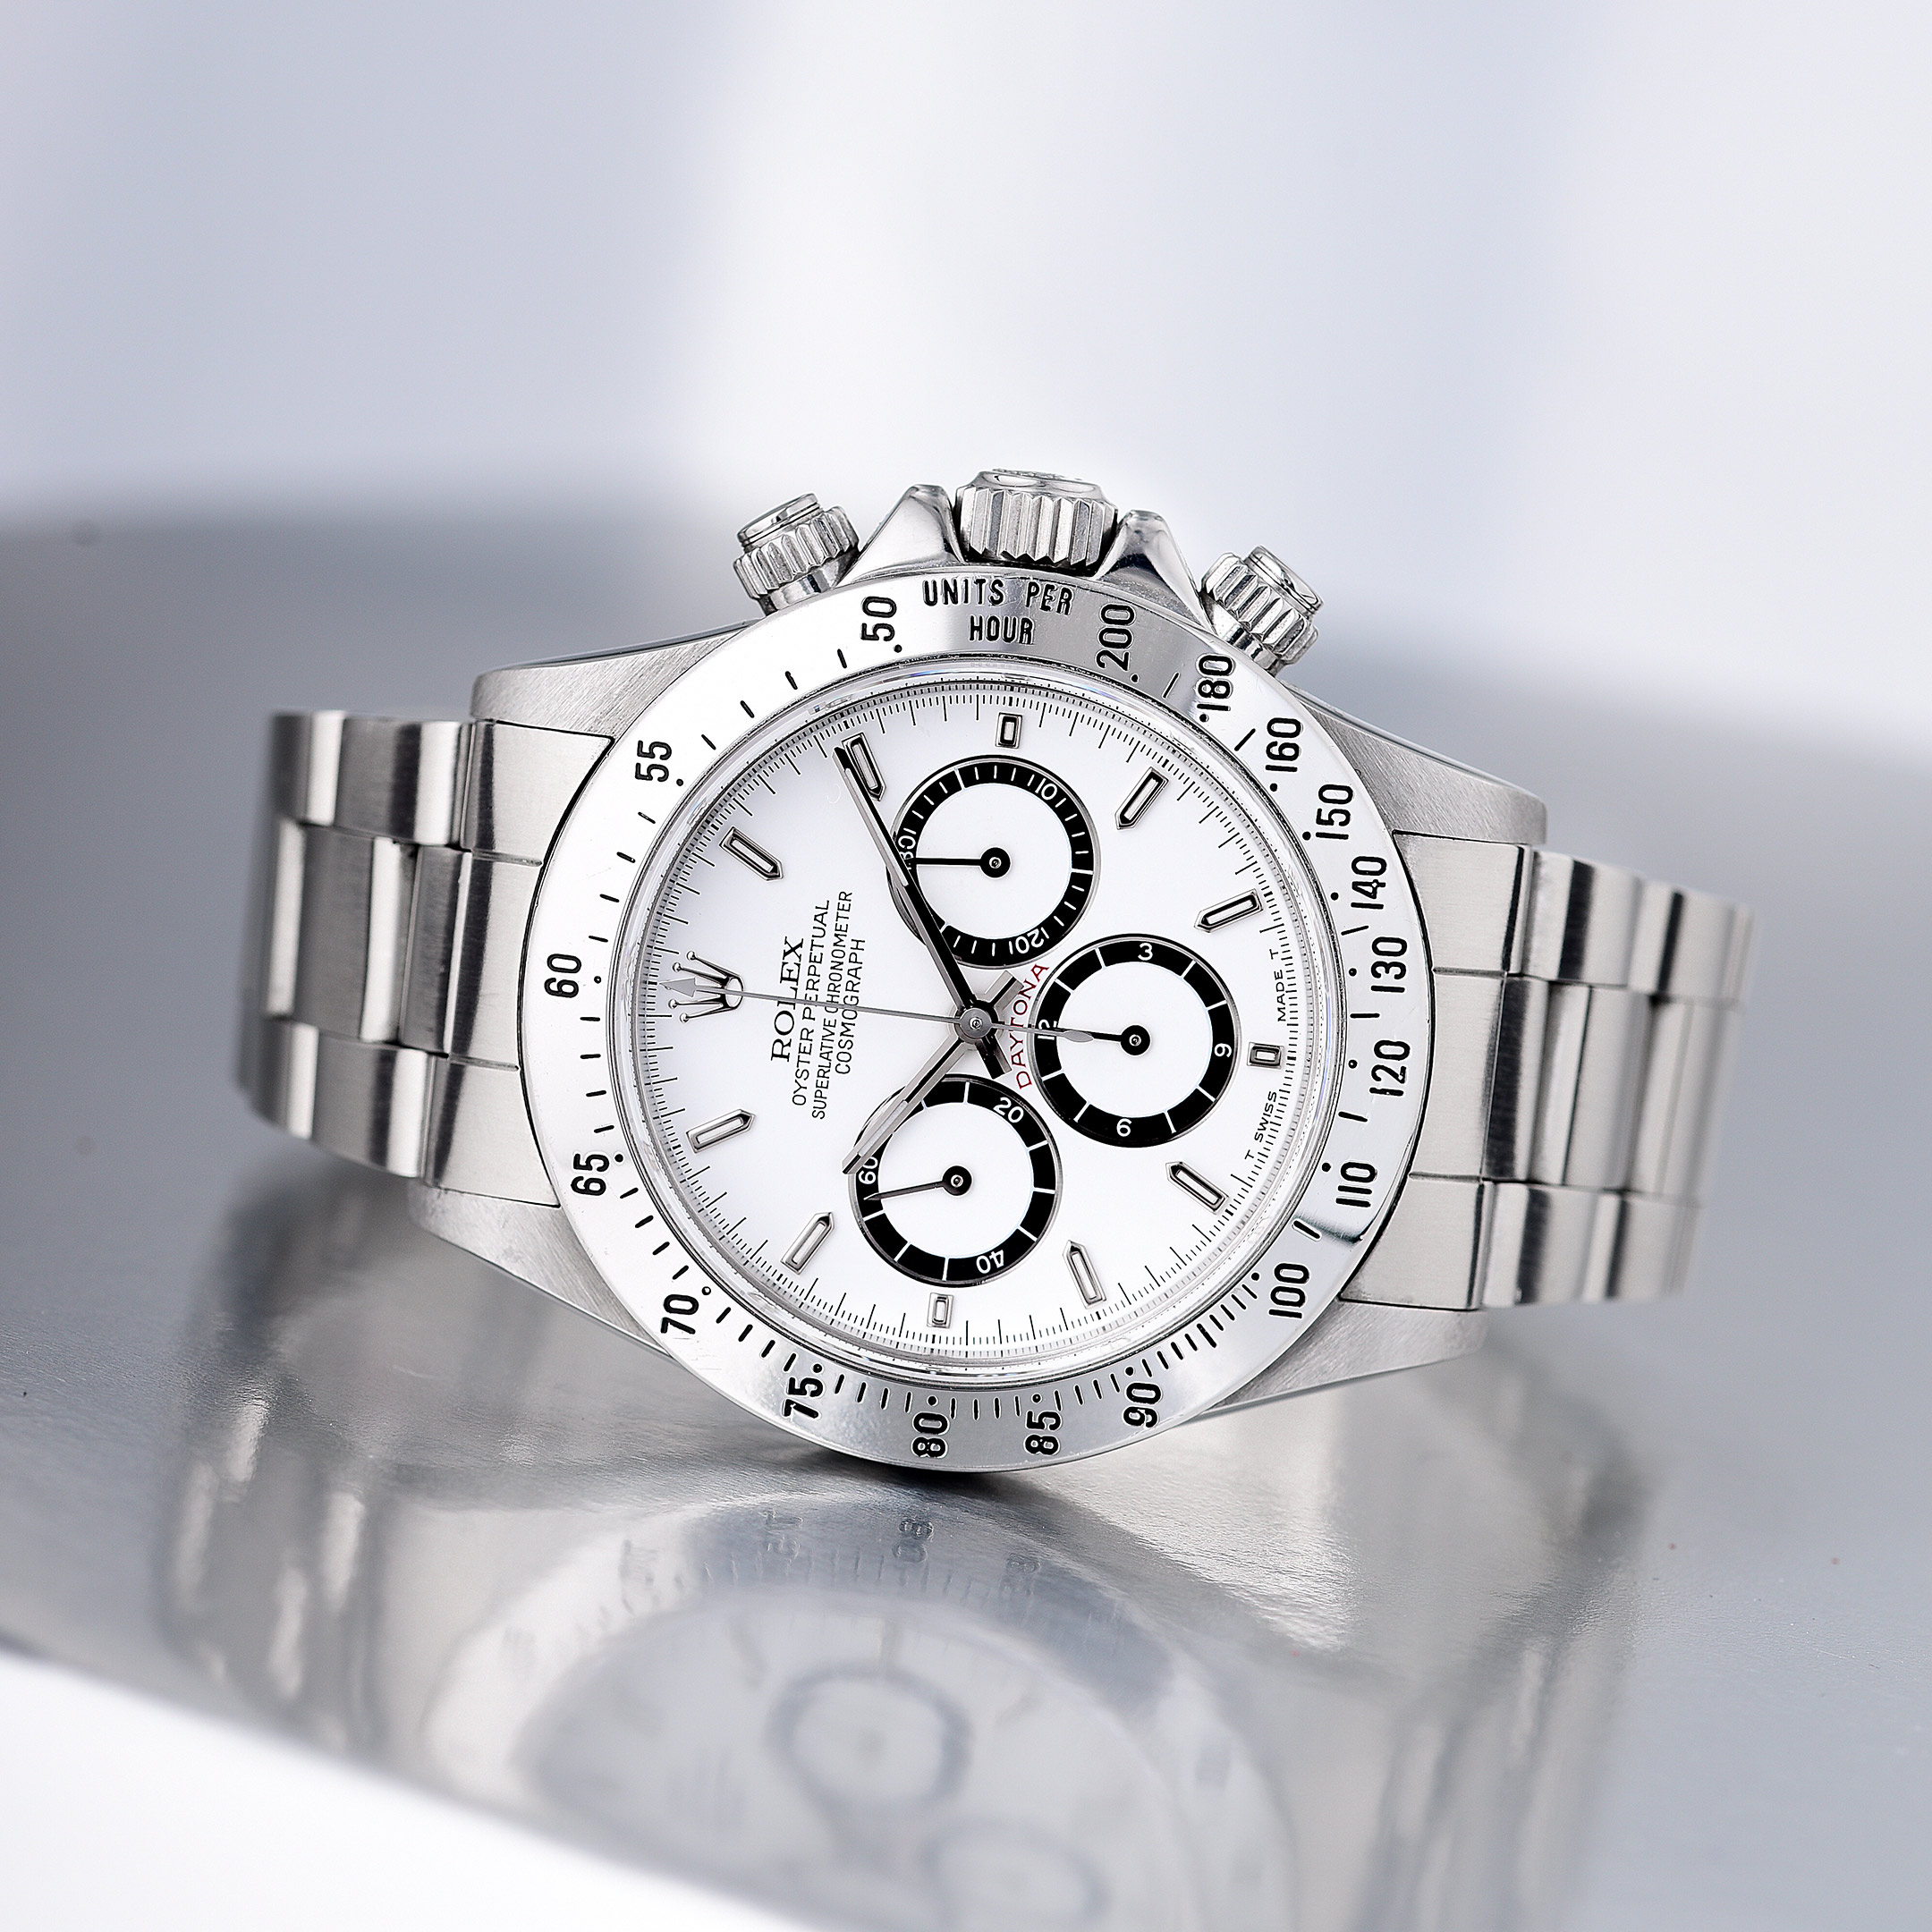 Rolex Daytona Ref. 116520 - Fortuna NYC Fine Jewelry & Watch Auction